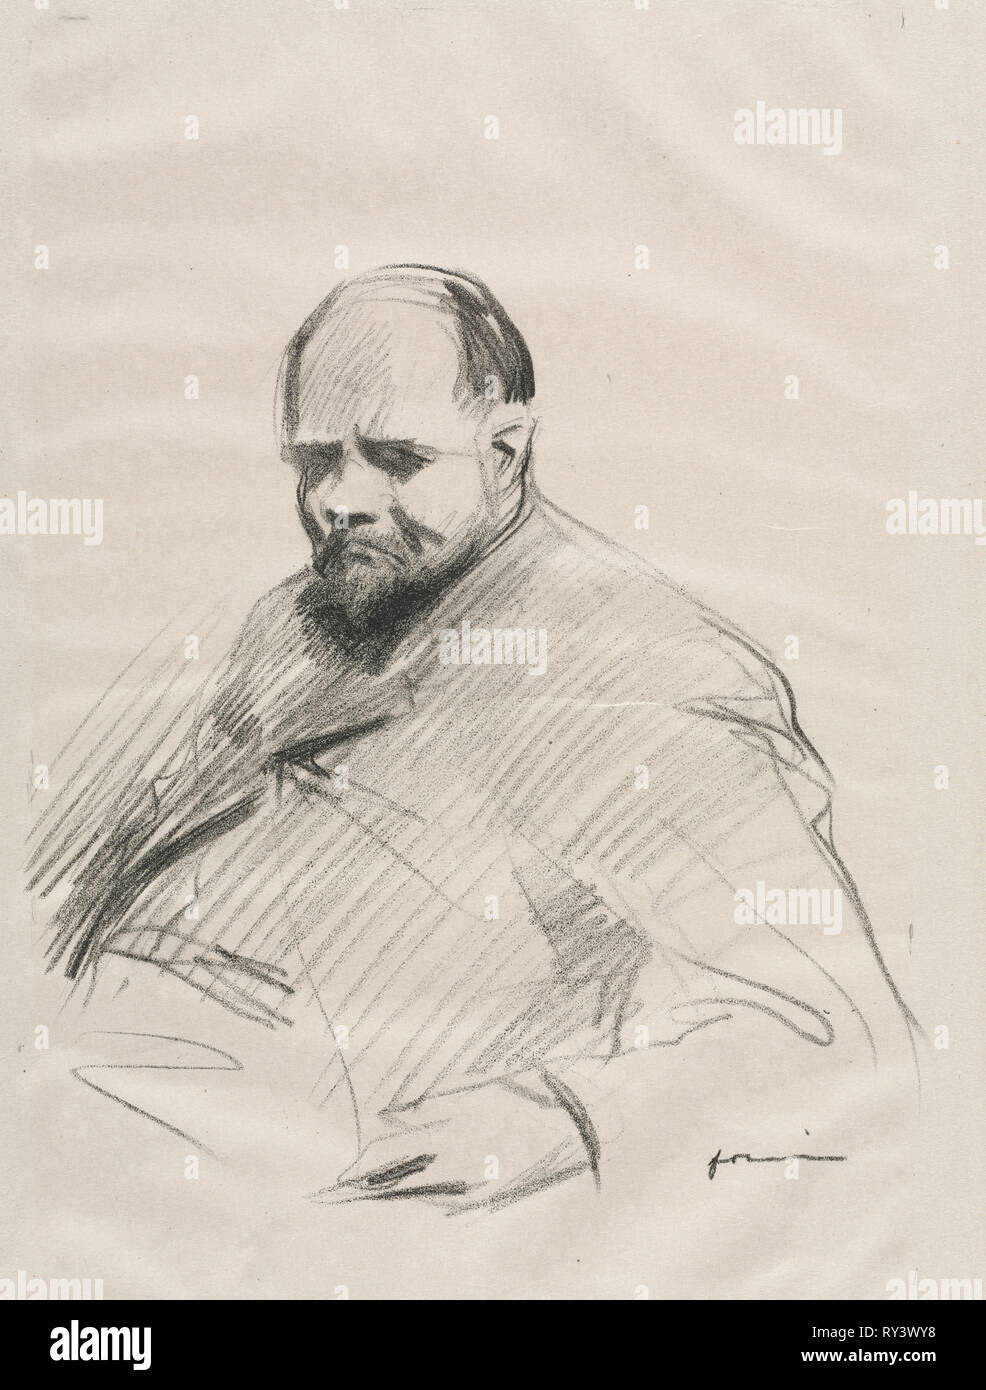 Ambroise Vollard. Jean Louis Forain (French, 1852-1931). Lithograph - Stock Image